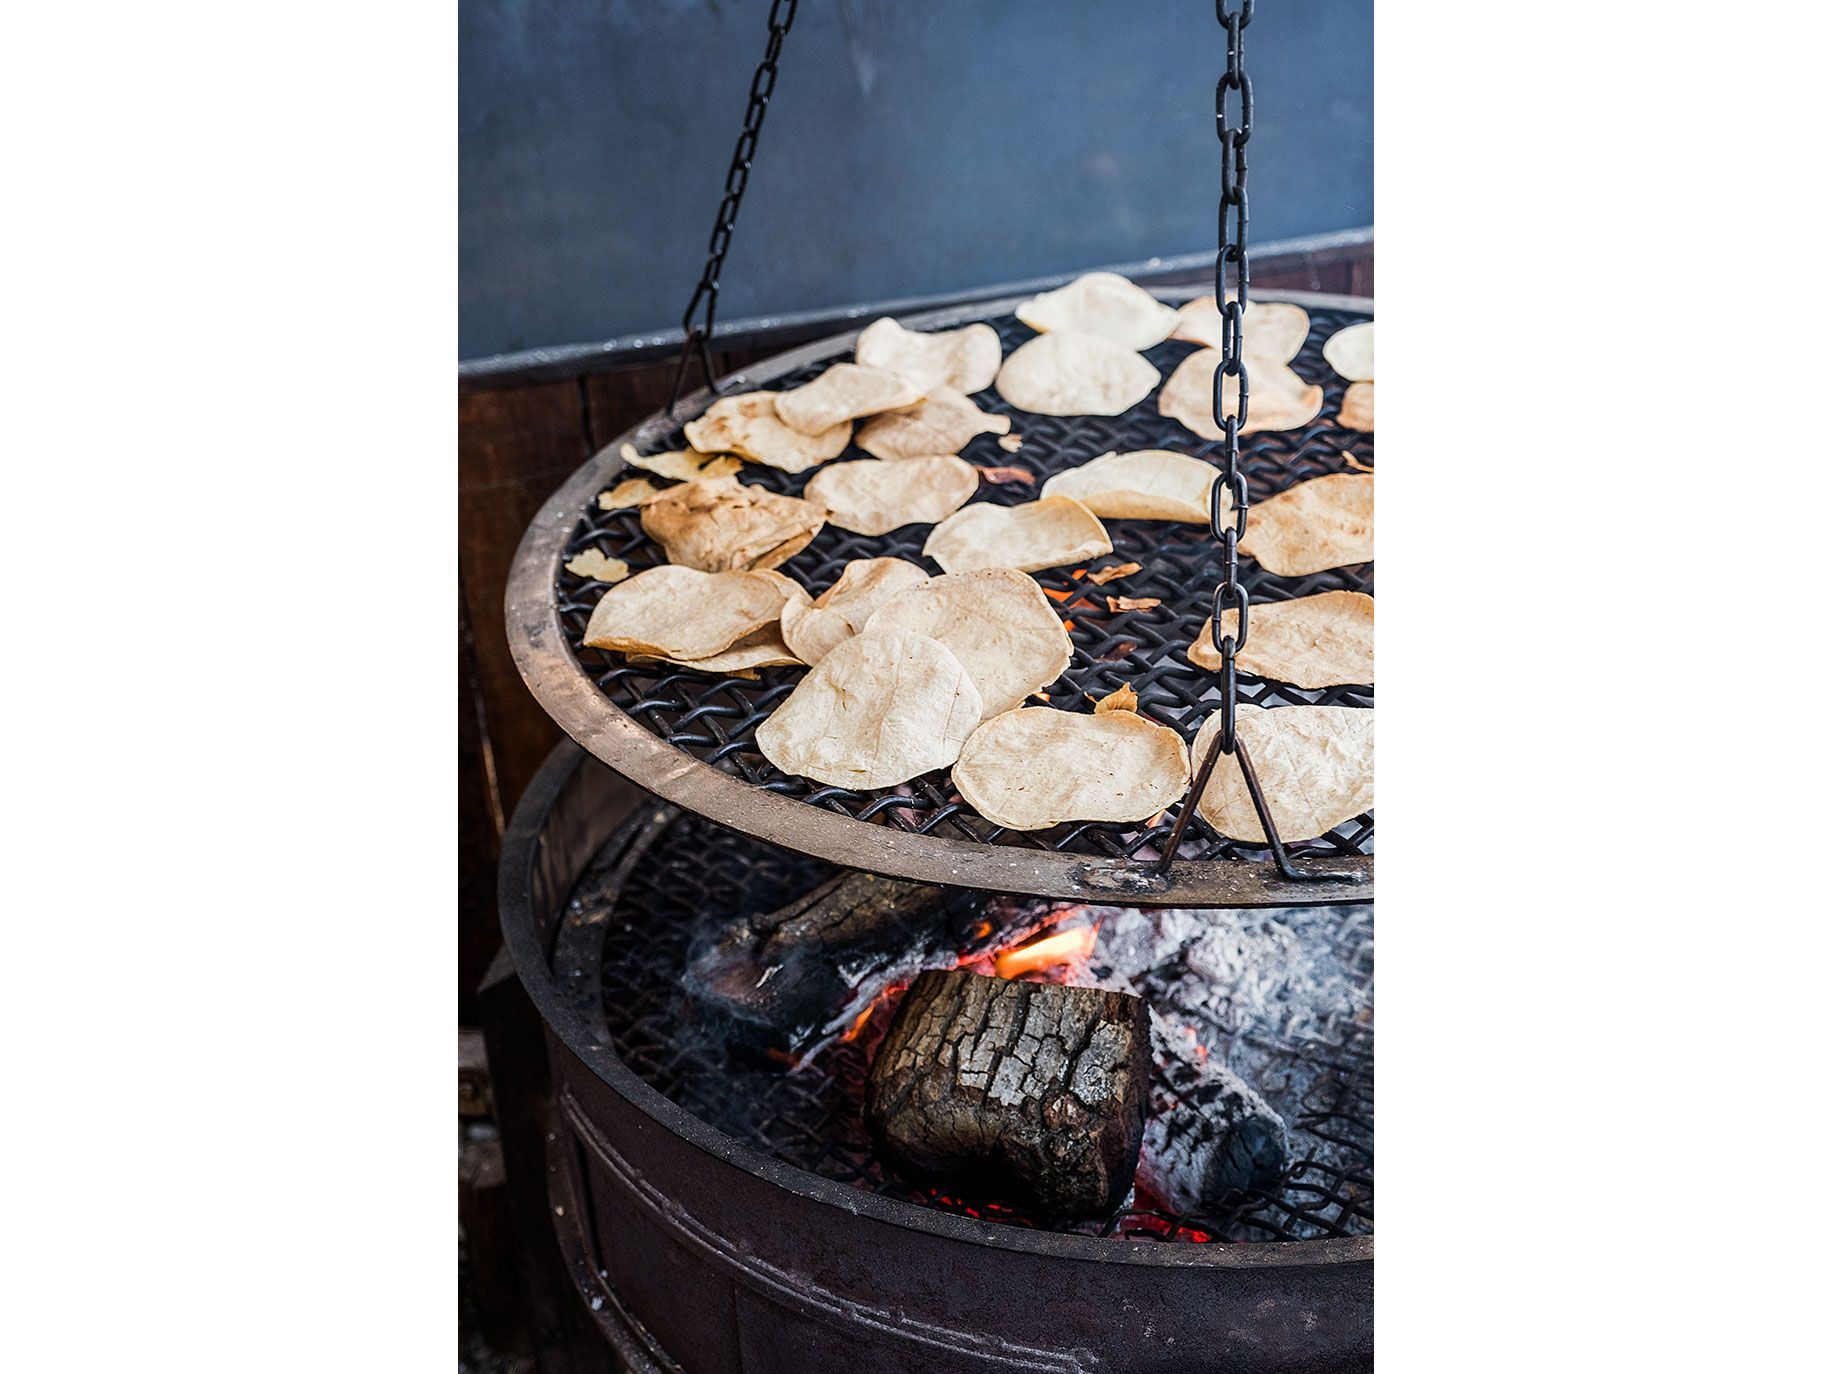 Tortillas rotate on a grill at Deckman's.